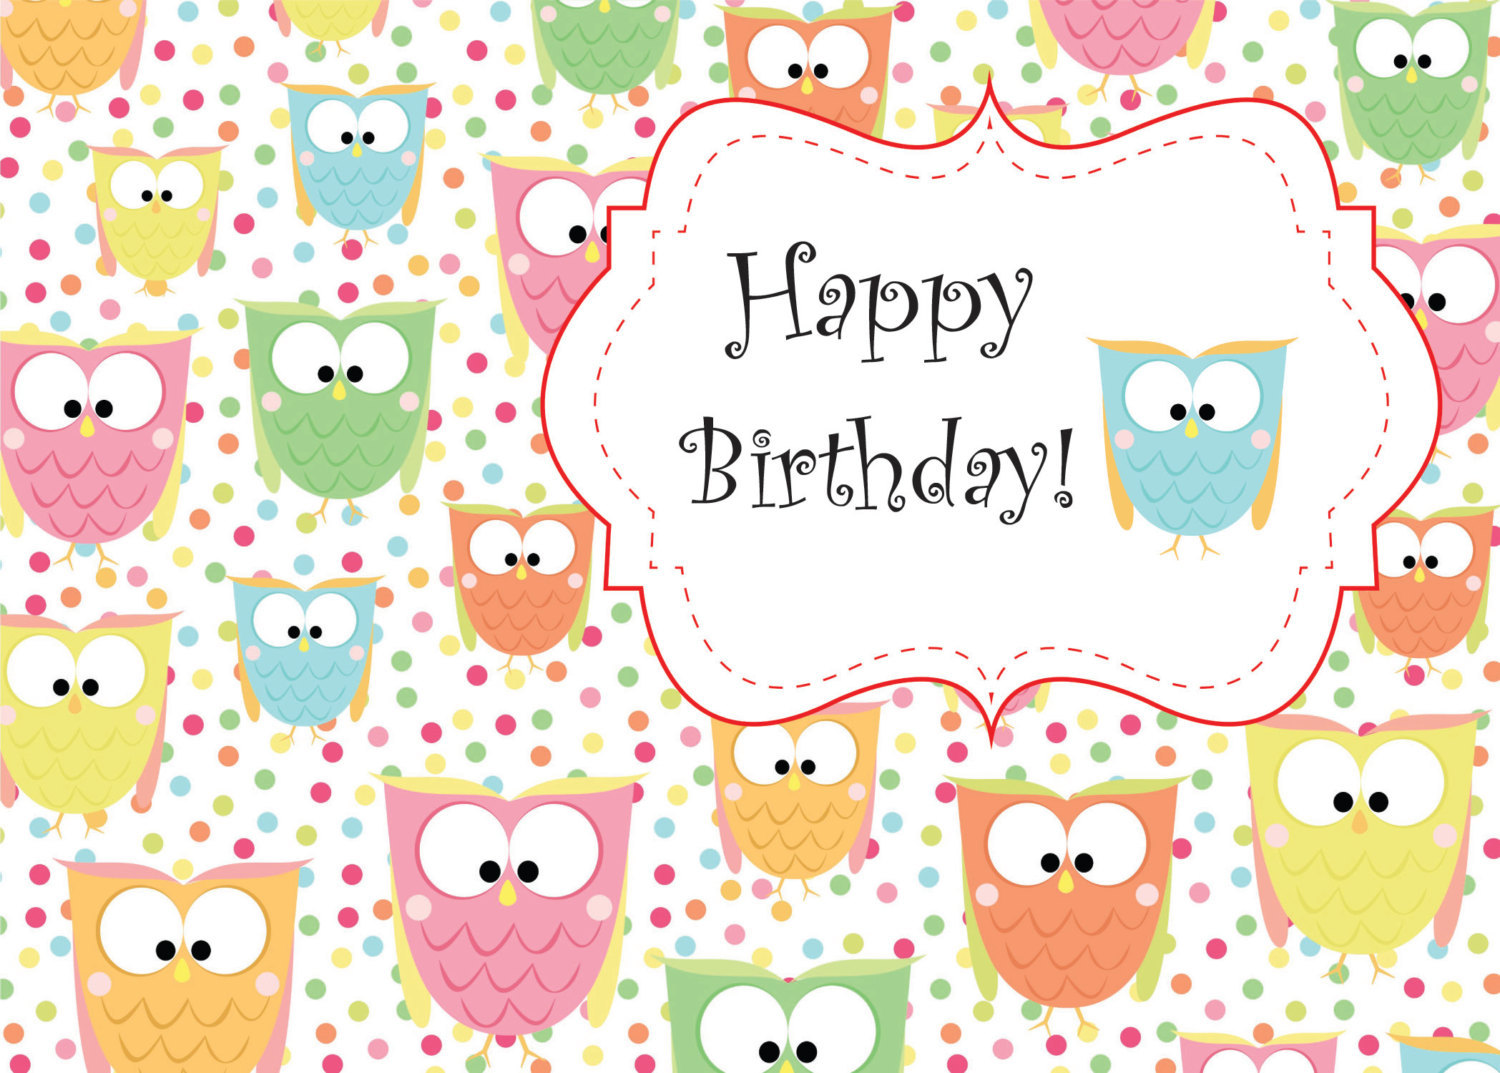 birthday greeting cards for printing ; il_fullxfull